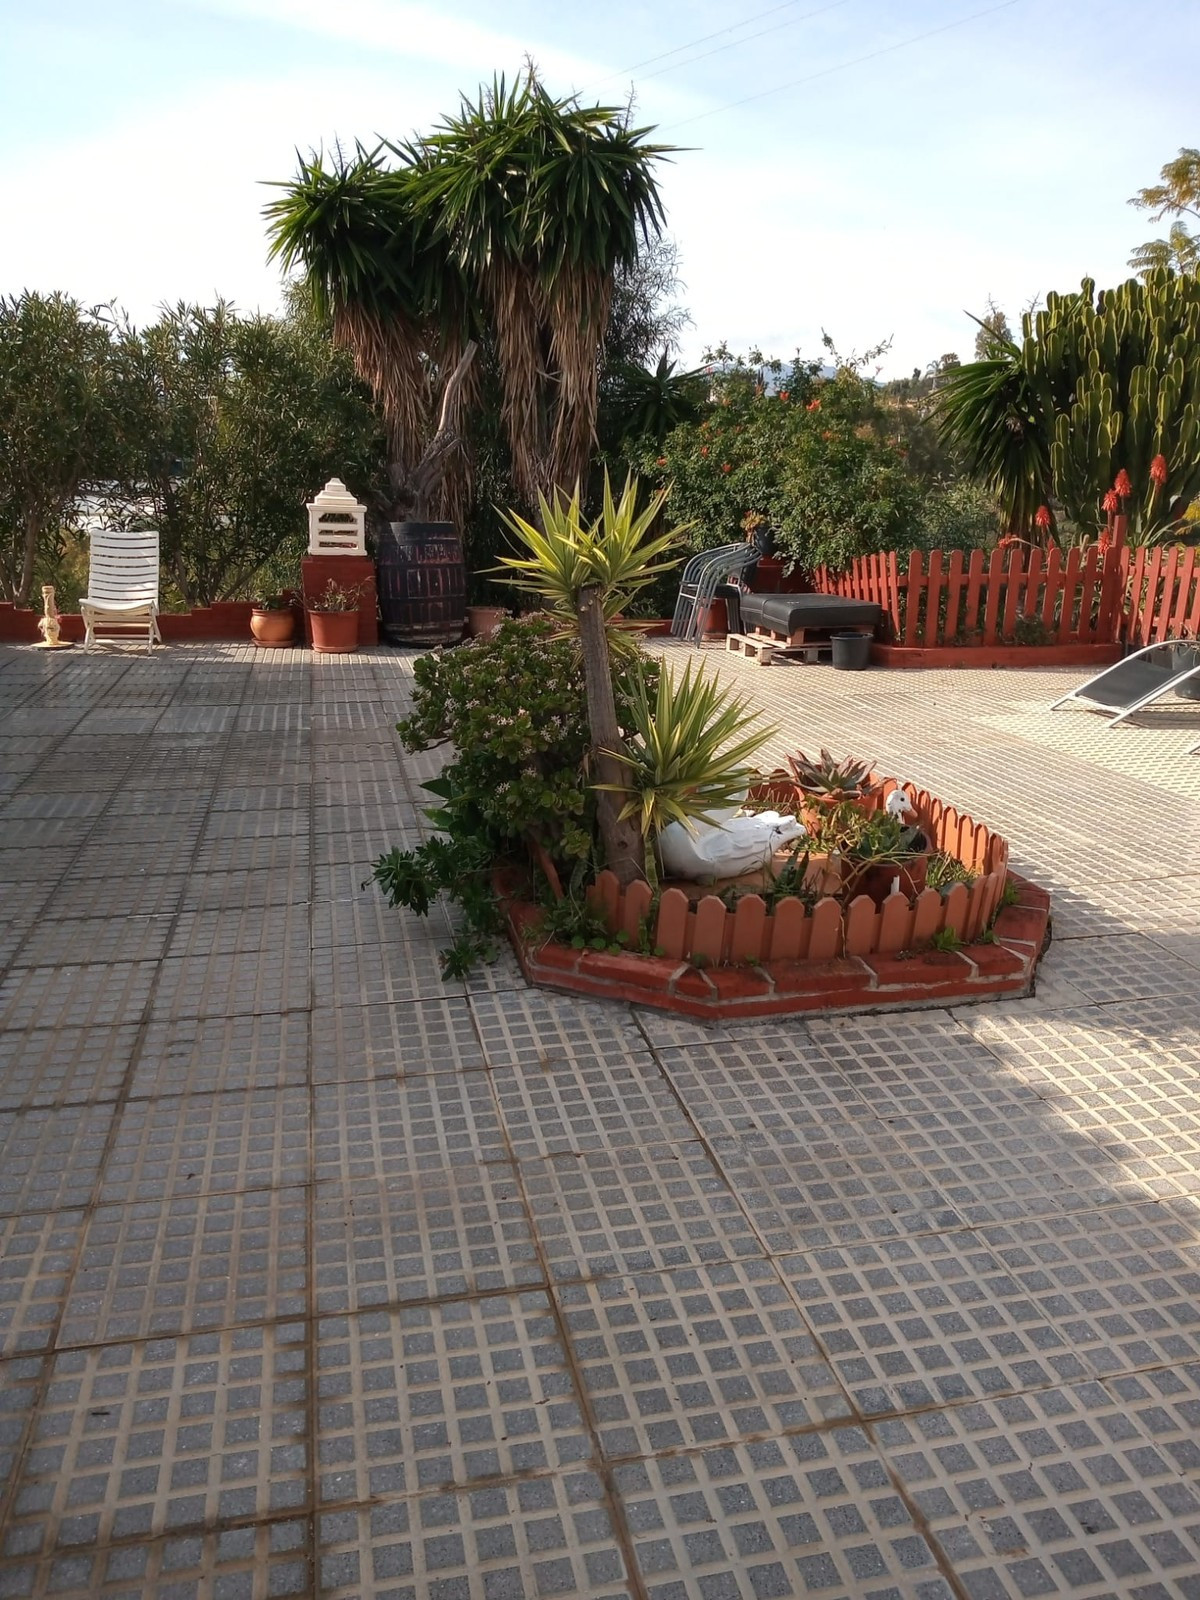 Qlistings - Countryside House in Mijas, Costa del Sol Property Image